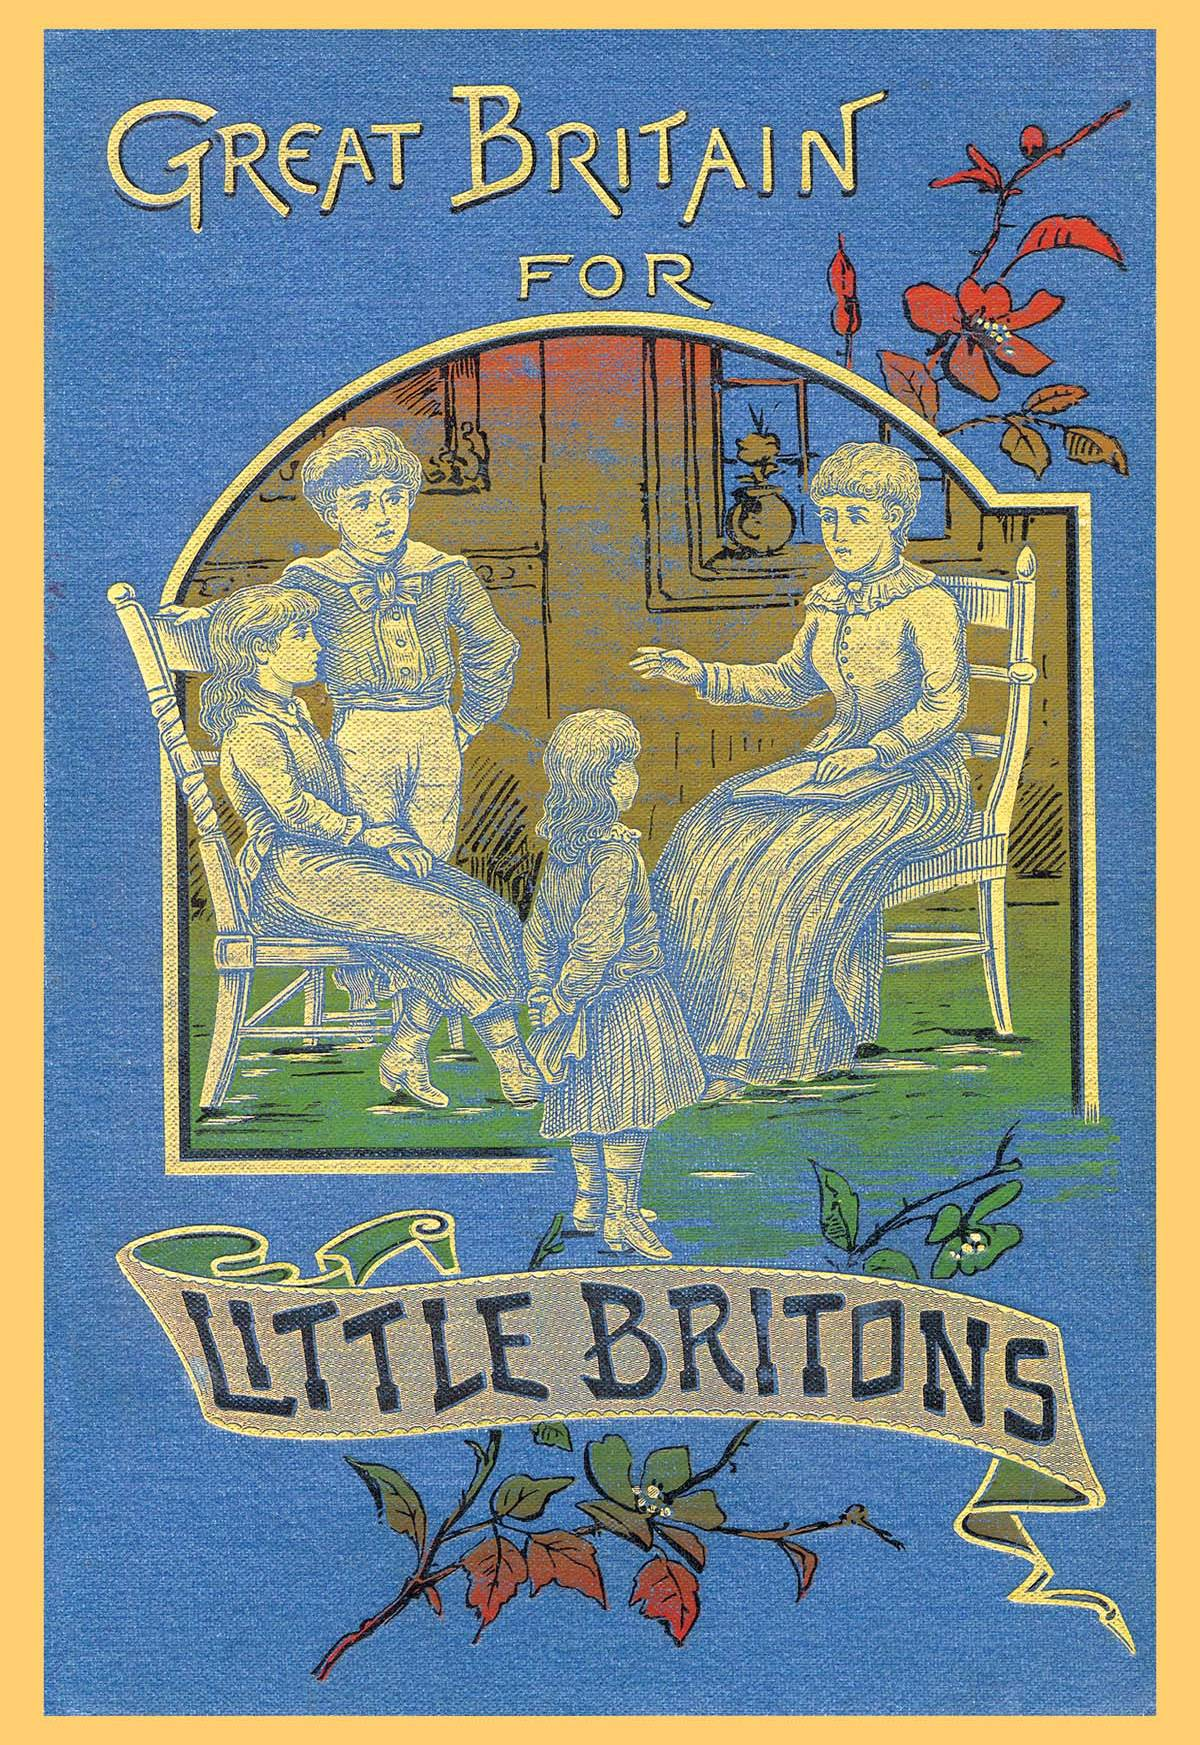 Classic Book Covers On Canvas : Great britain for little britons posters and canvas art